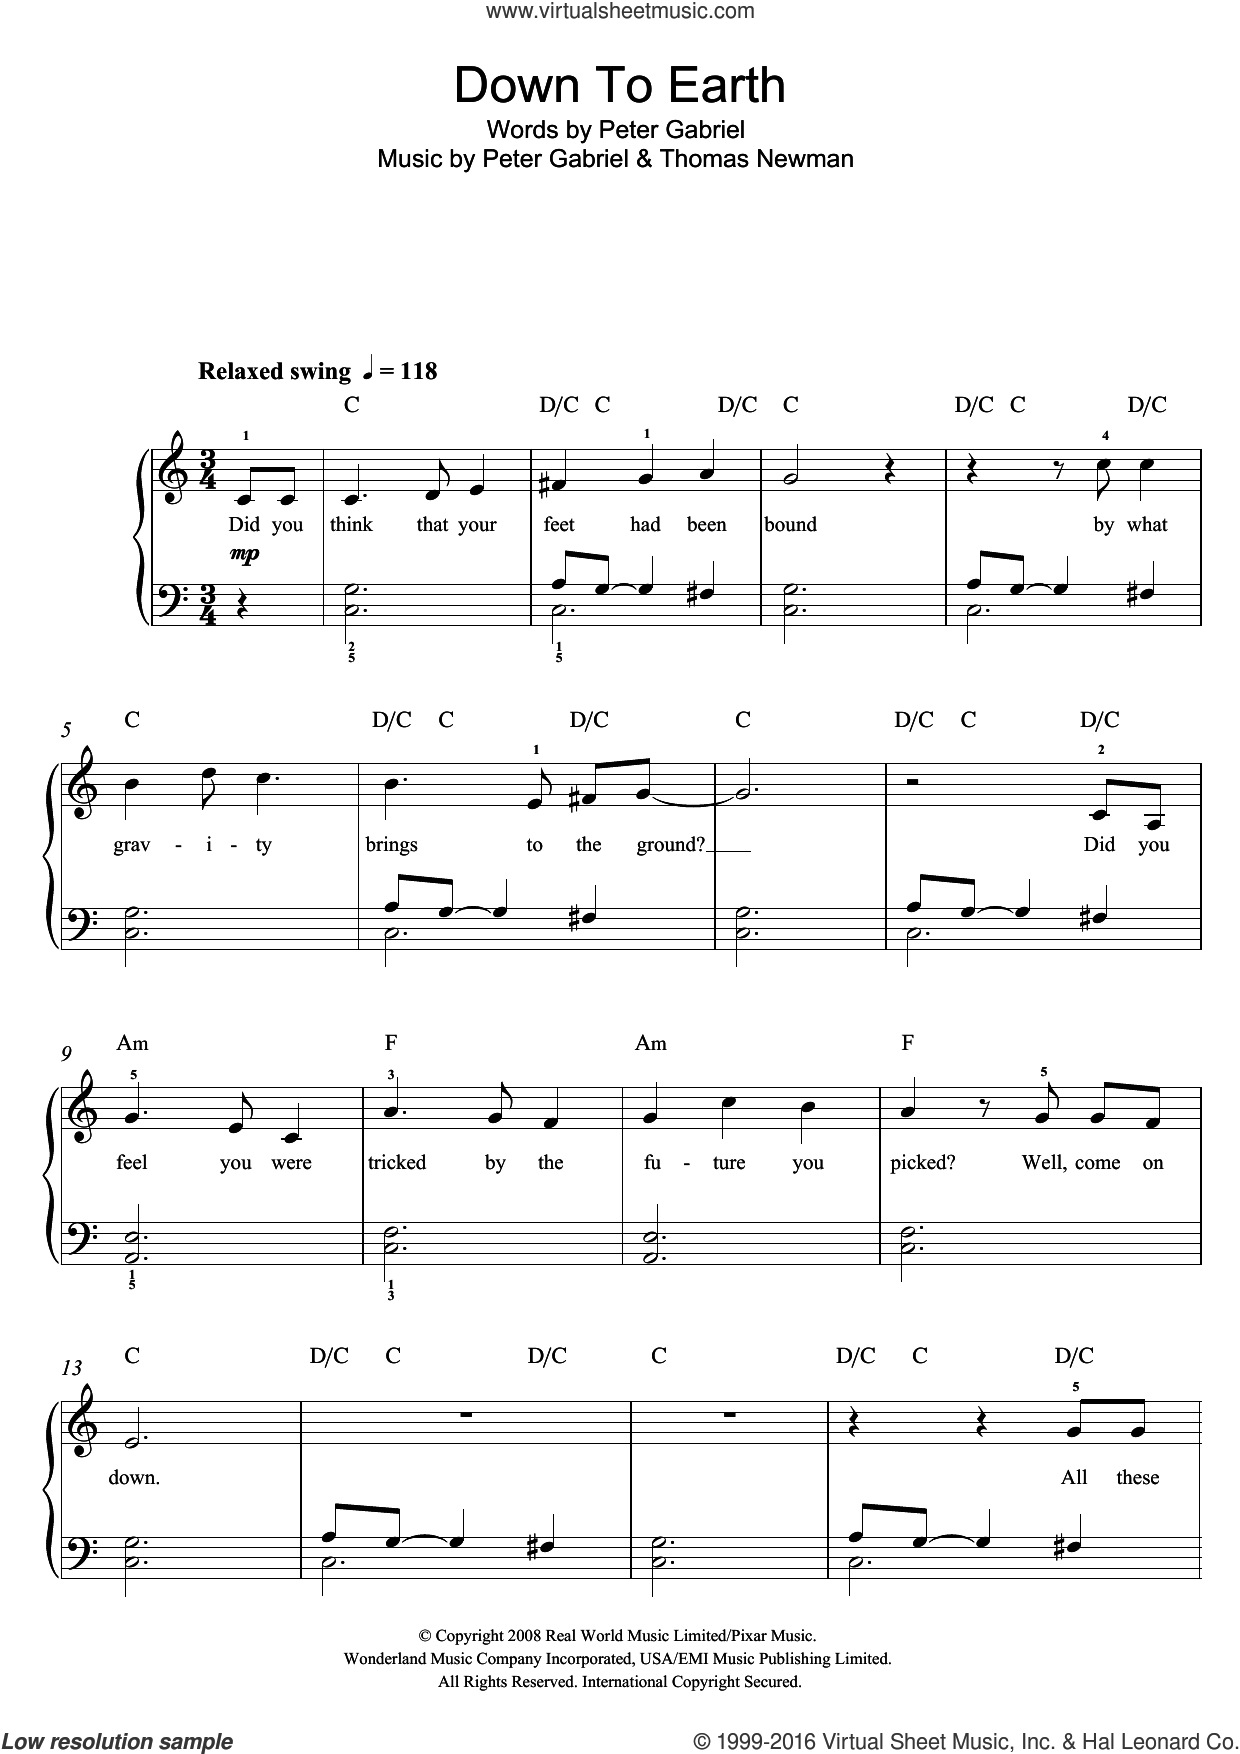 Down To Earth (from 'WALLaA�A�E') sheet music for voice, piano or guitar by Thomas Newman and Peter Gabriel. Score Image Preview.